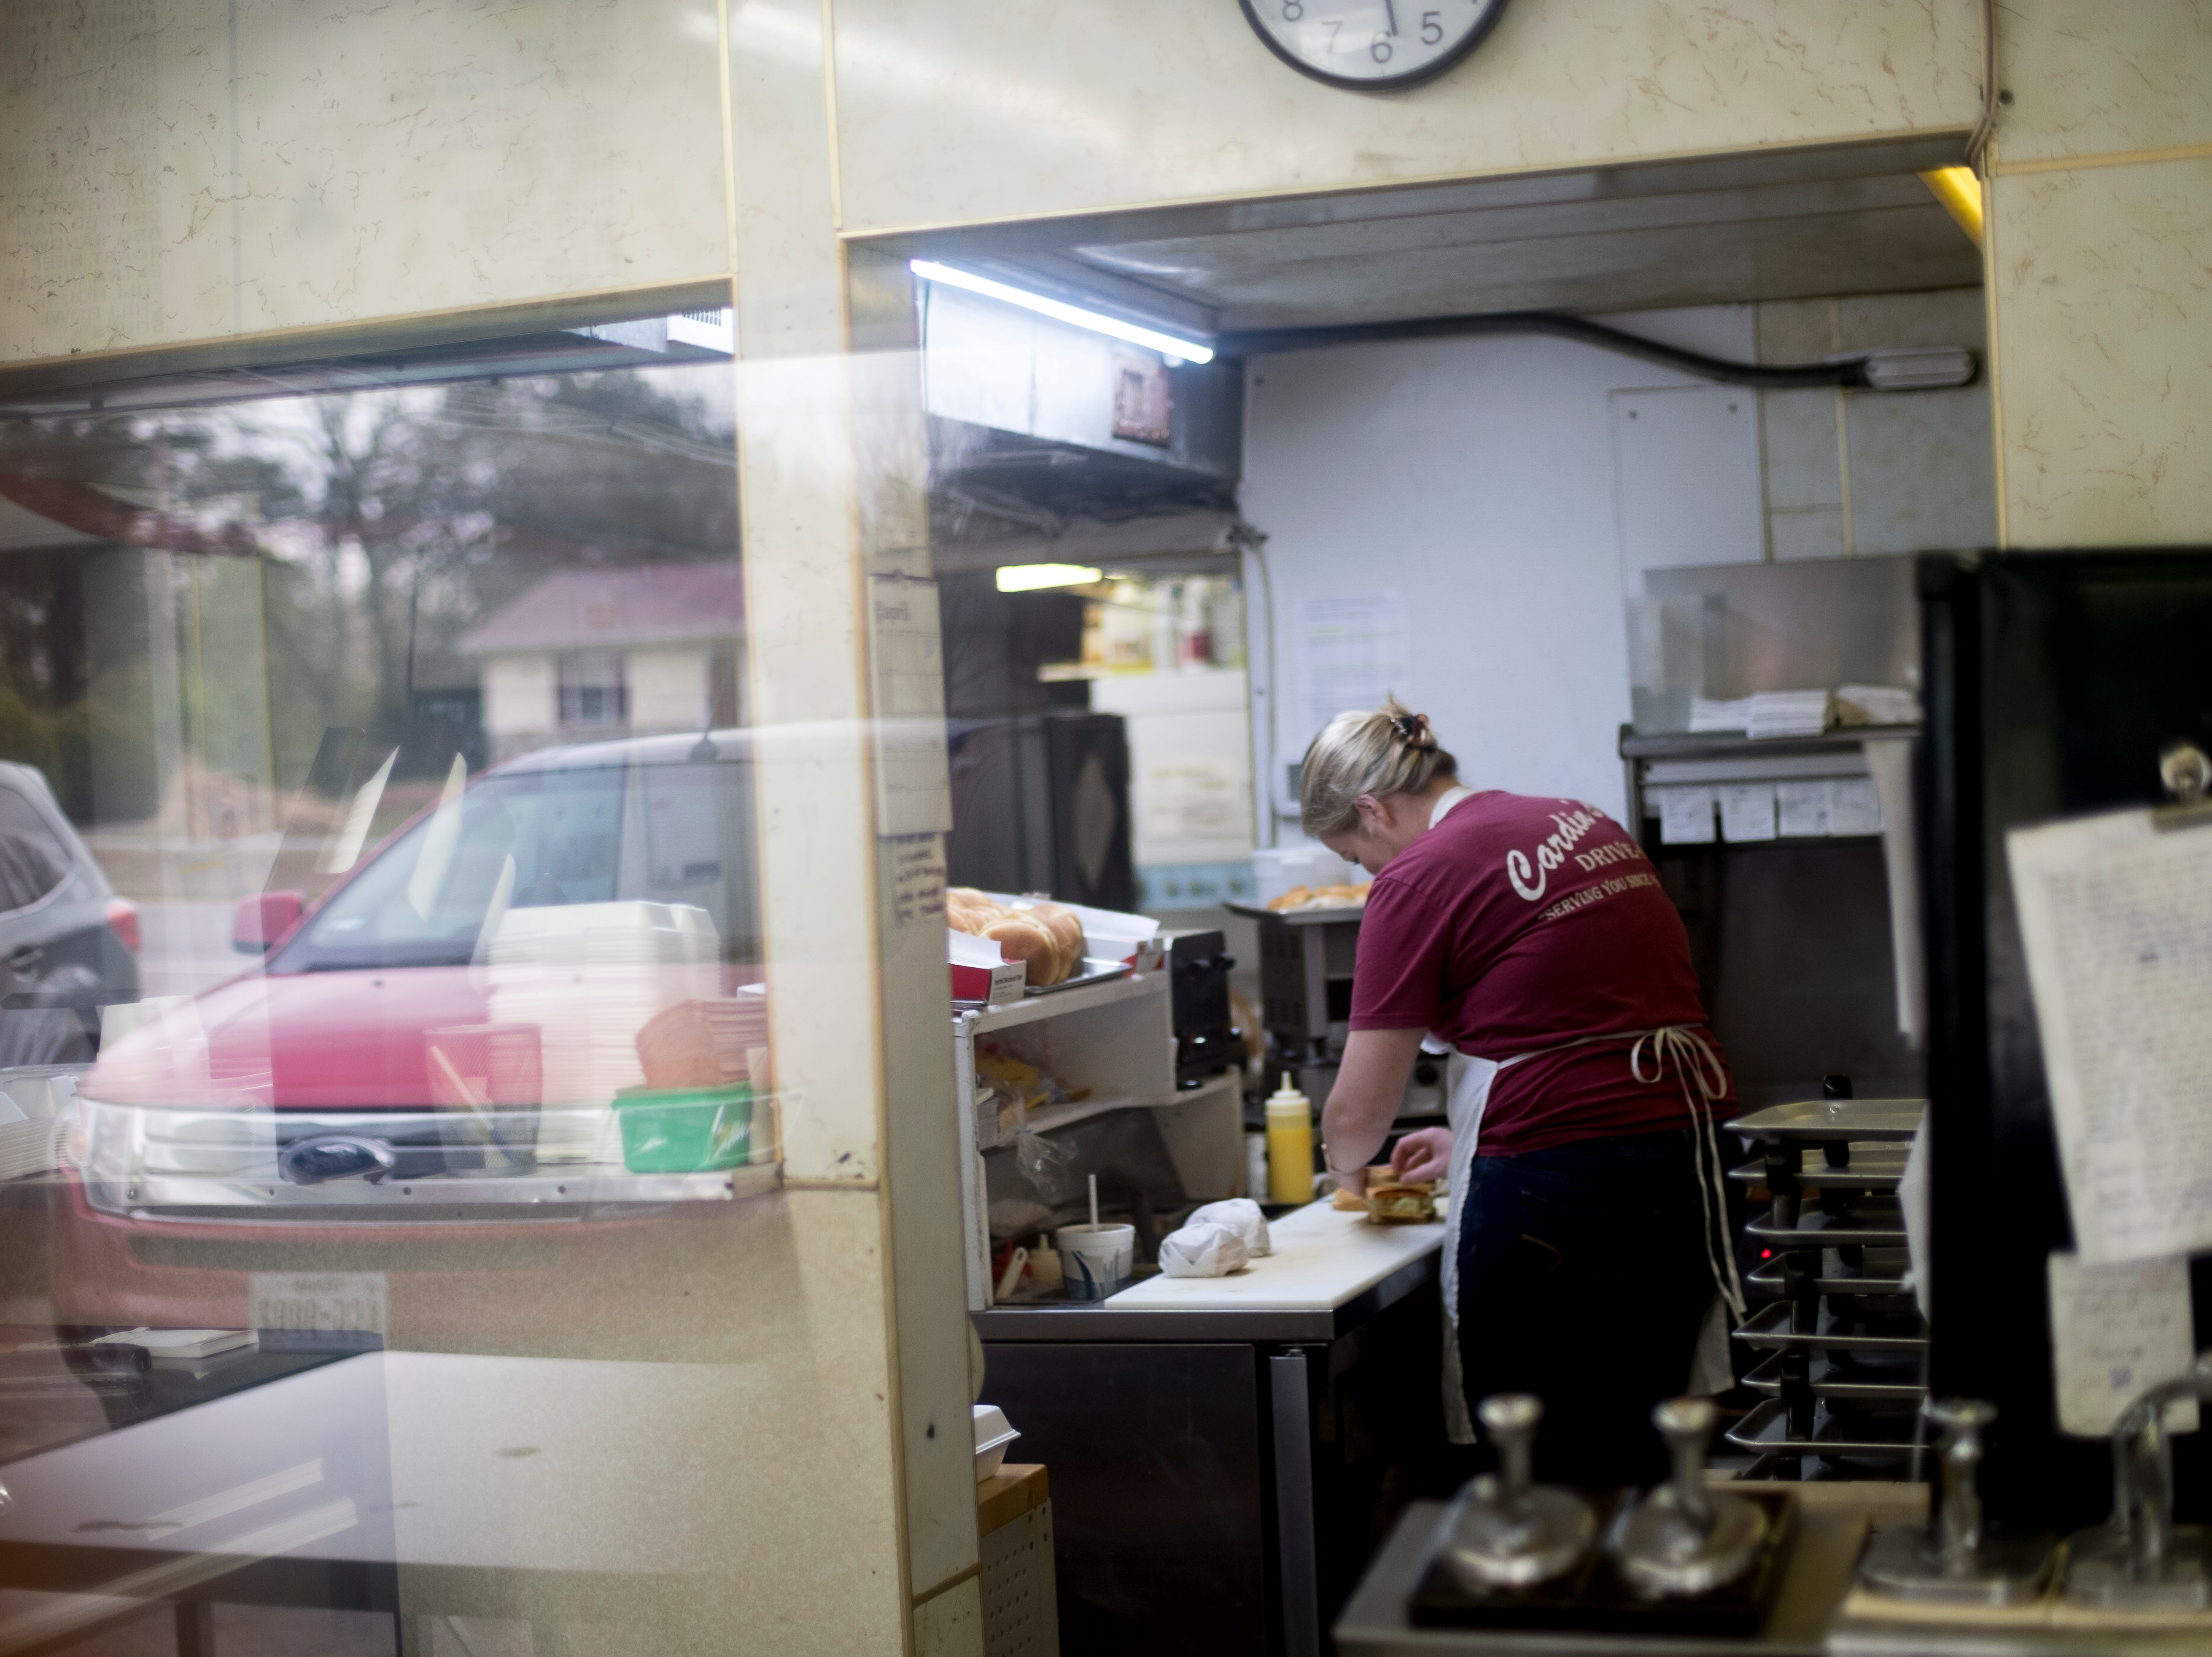 Cooks prepare meals in the kitchen at Cardin's Drive-In on Asheville Highway in Knoxville, Tennessee on Friday, April 5, 2019. The popular drive-in is celebrating 60 years of business this Saturday with sixty cent ice cream cones.